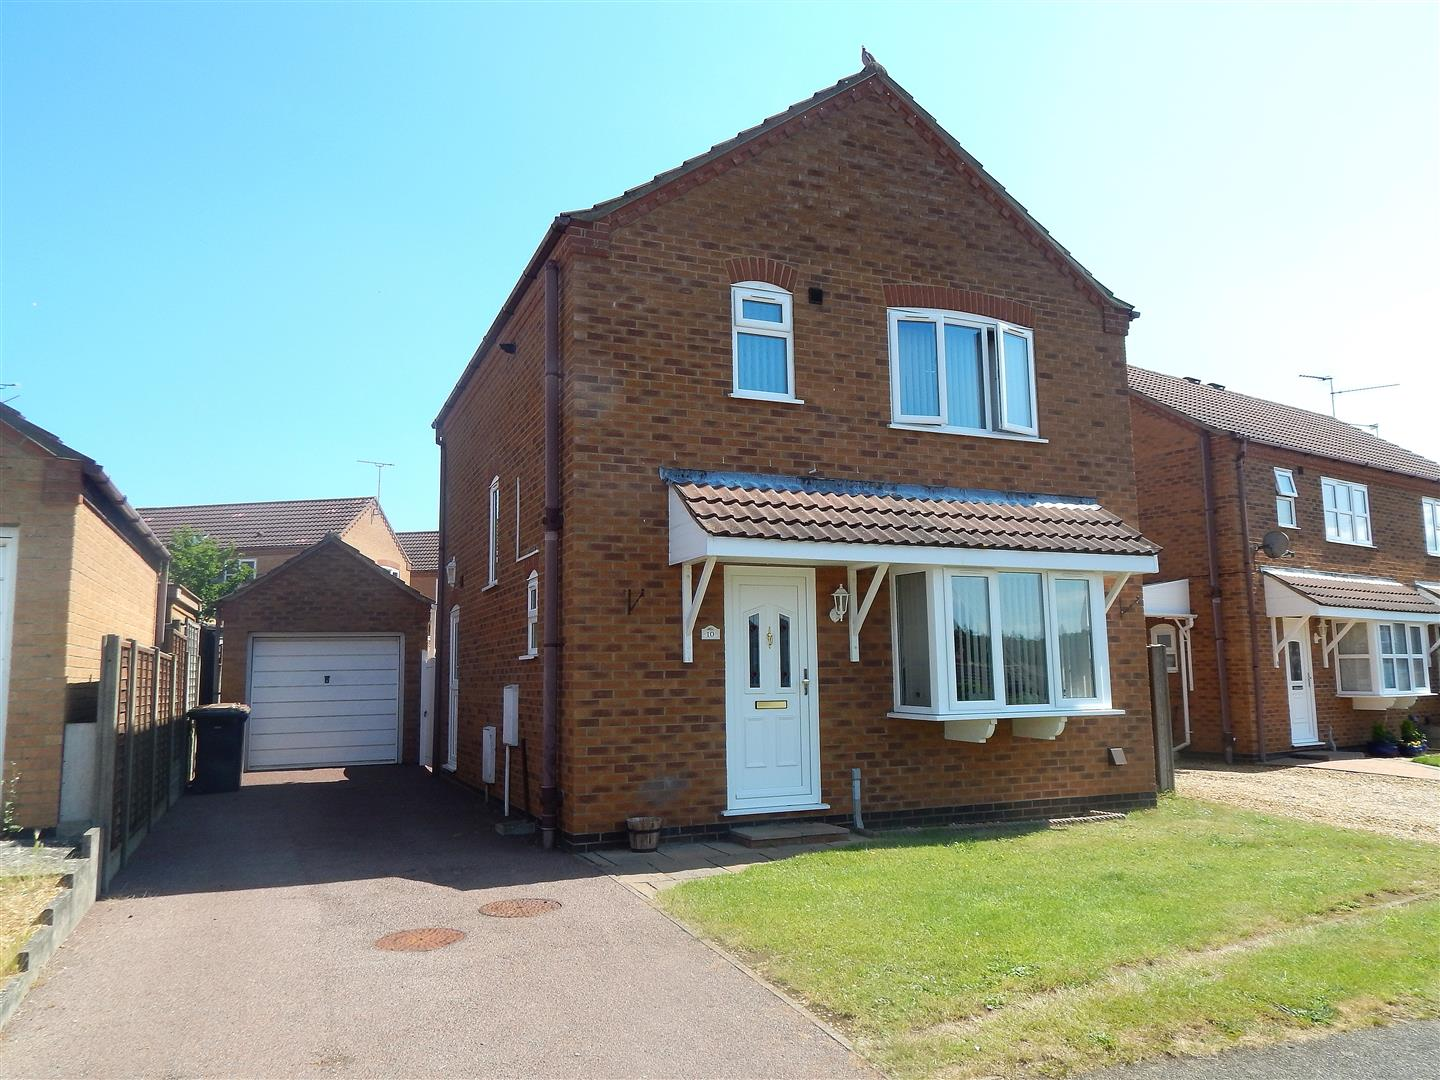 3 bed detached house for sale in Robert Balding Road, King's Lynn, PE31